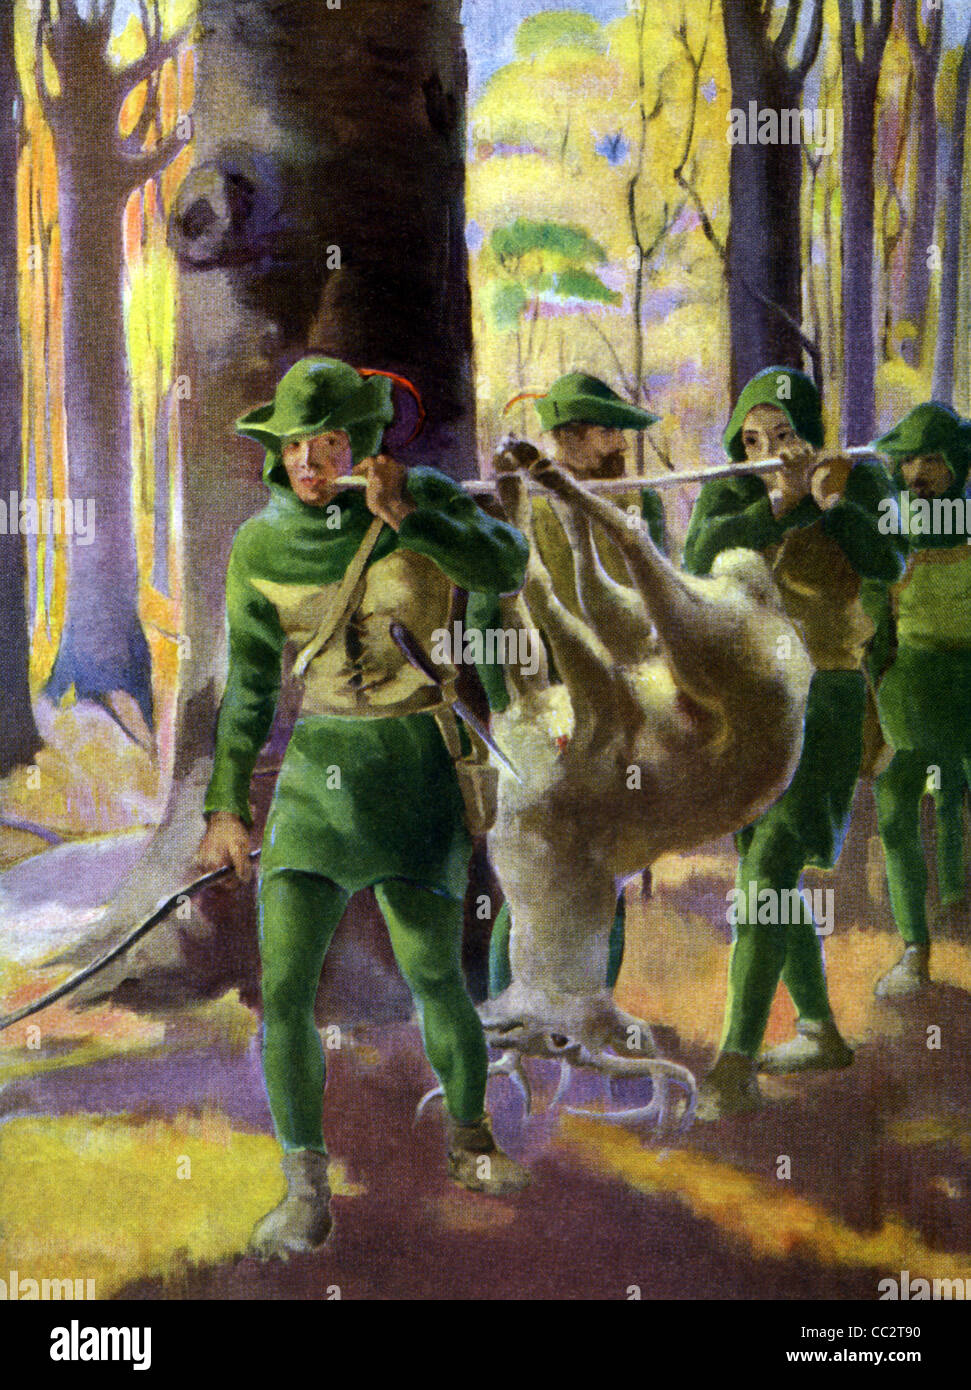 Legendary outlaw Robin Hood and his men lived in Sherwood Forest in Nottinghamshire and robbed the rich to help - Stock Image